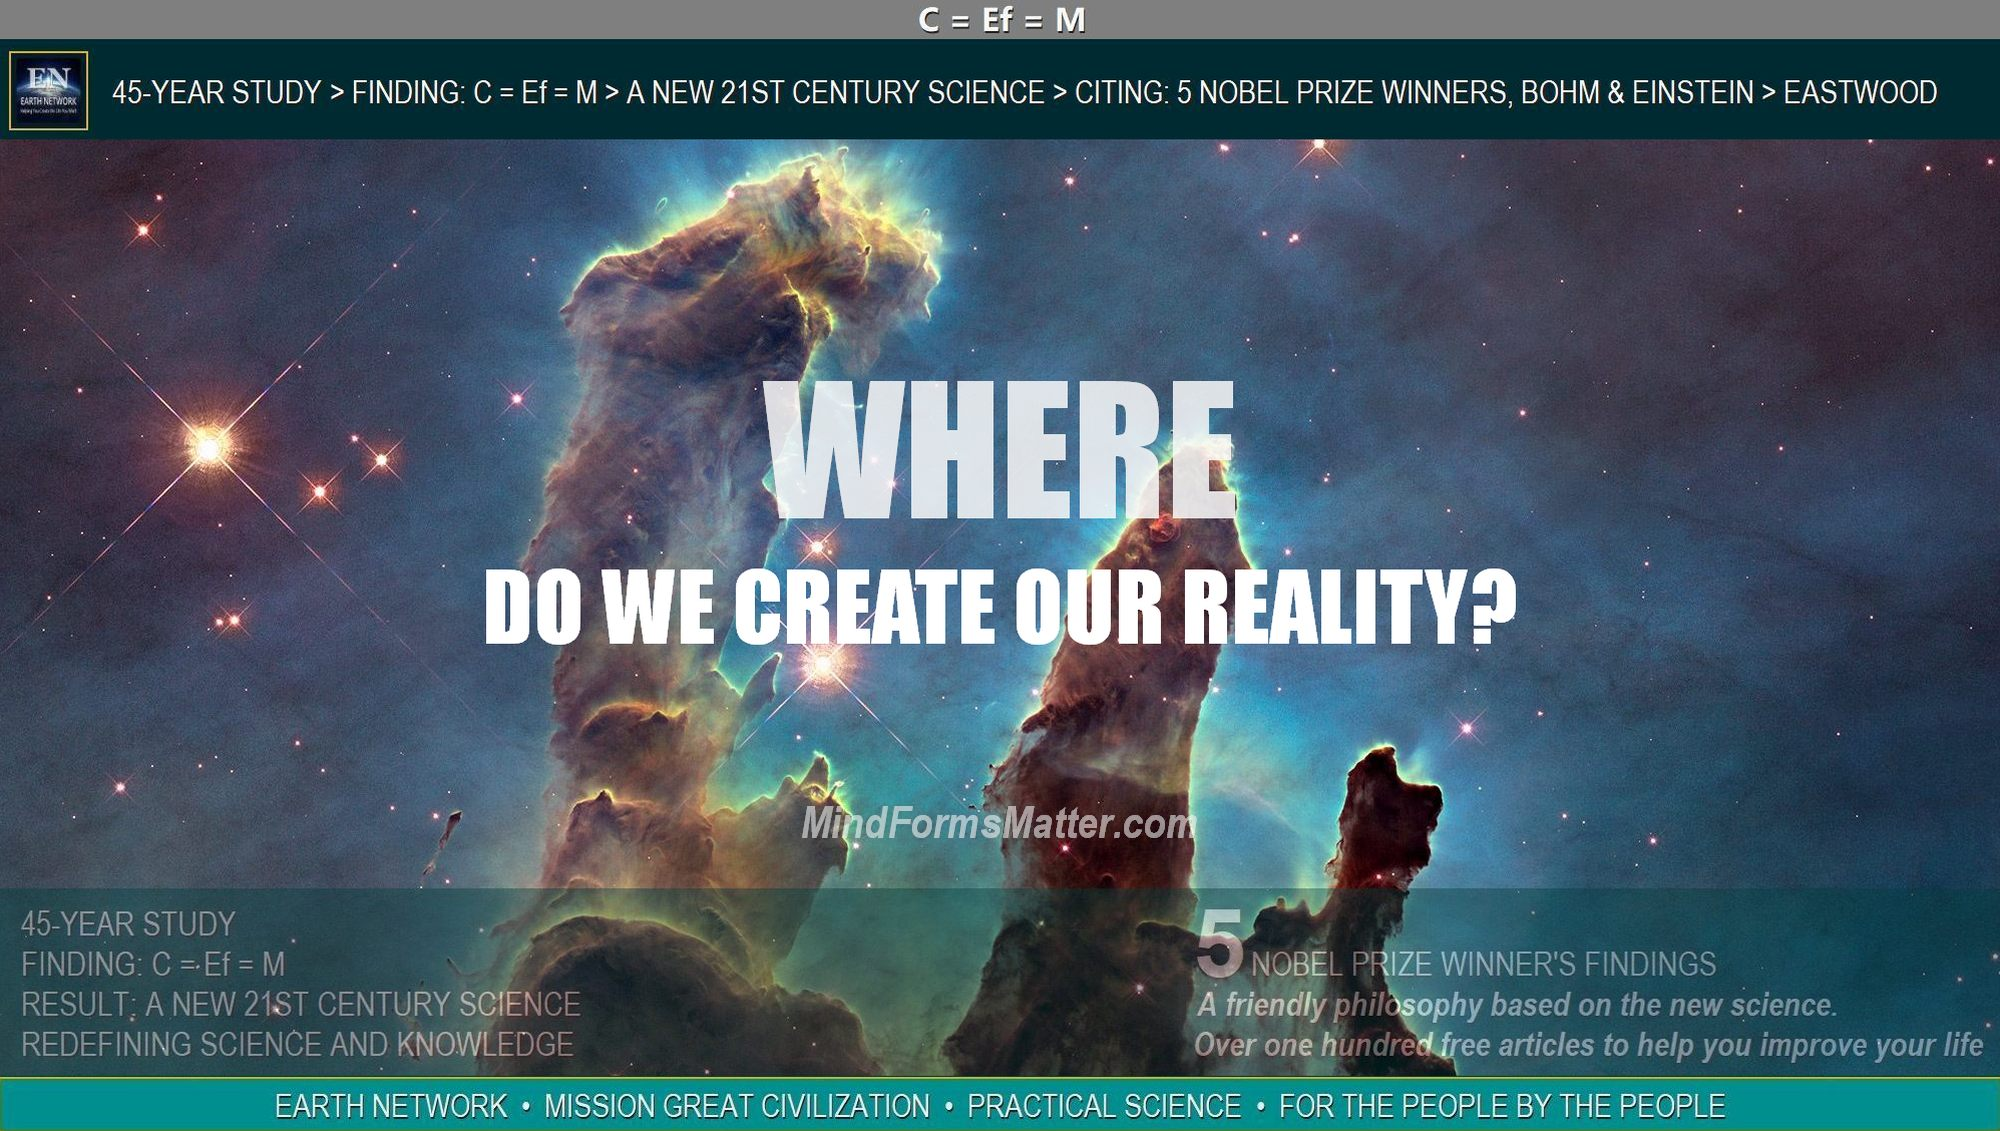 Galaxy depicts where we create our reality. You form events at deep inner levels of consciousness within an inner spiritual world.